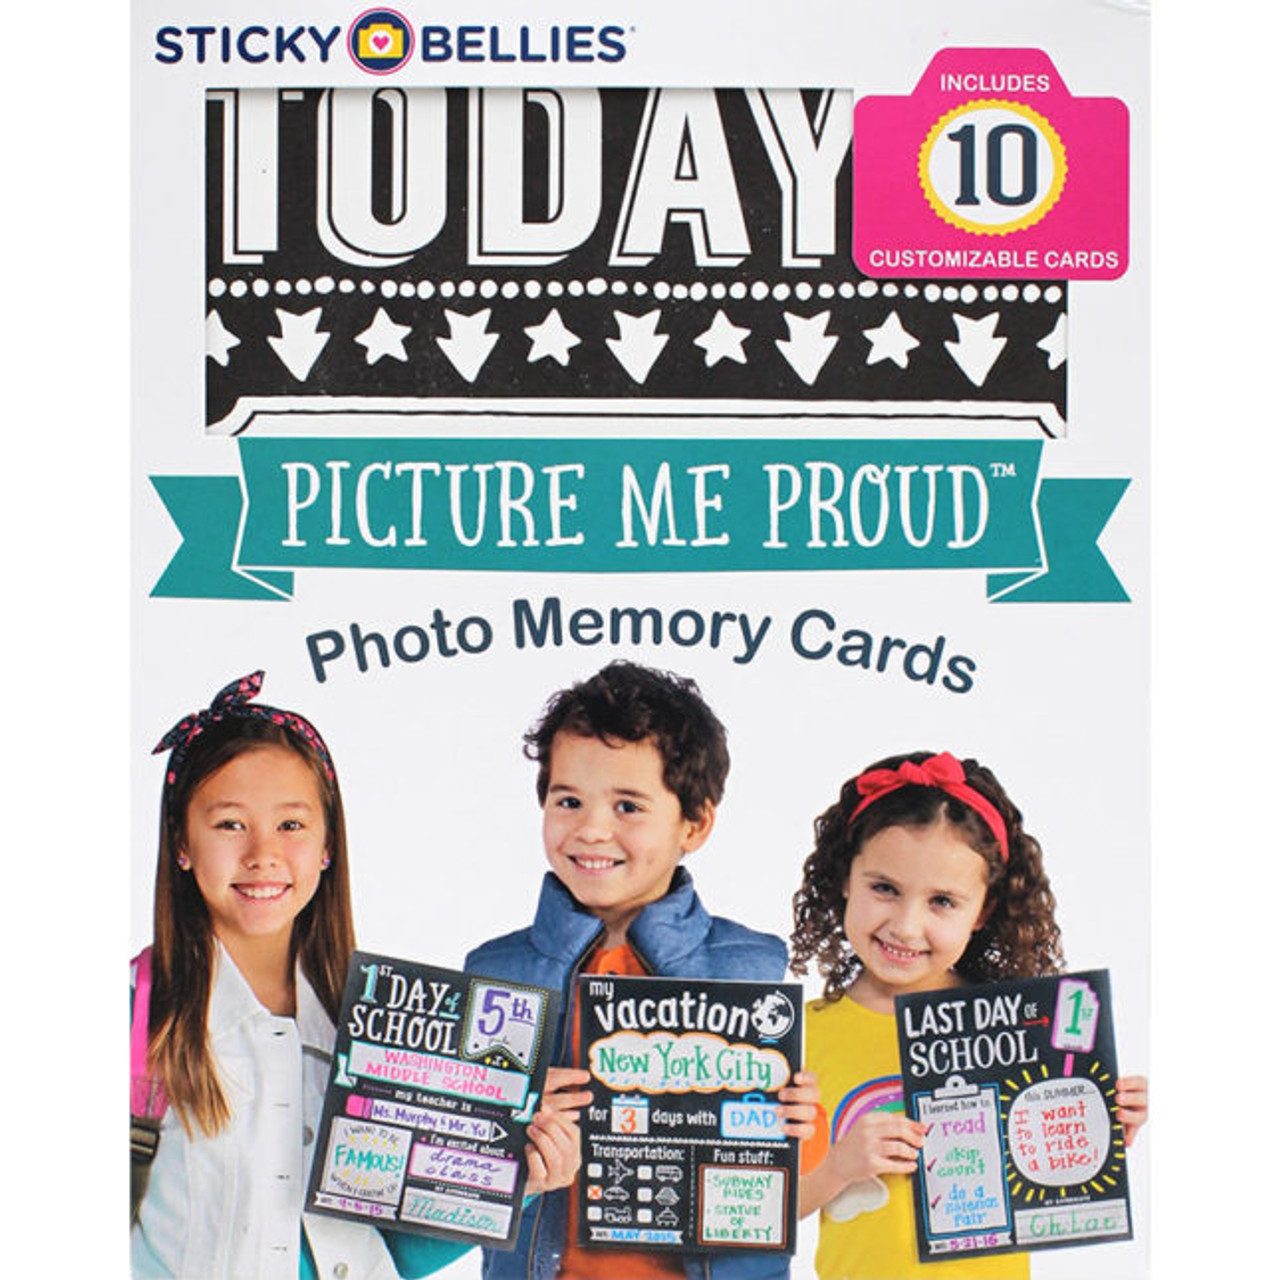 PICTURE ME PROUD Photo Memory Cards by Sticky Bellies